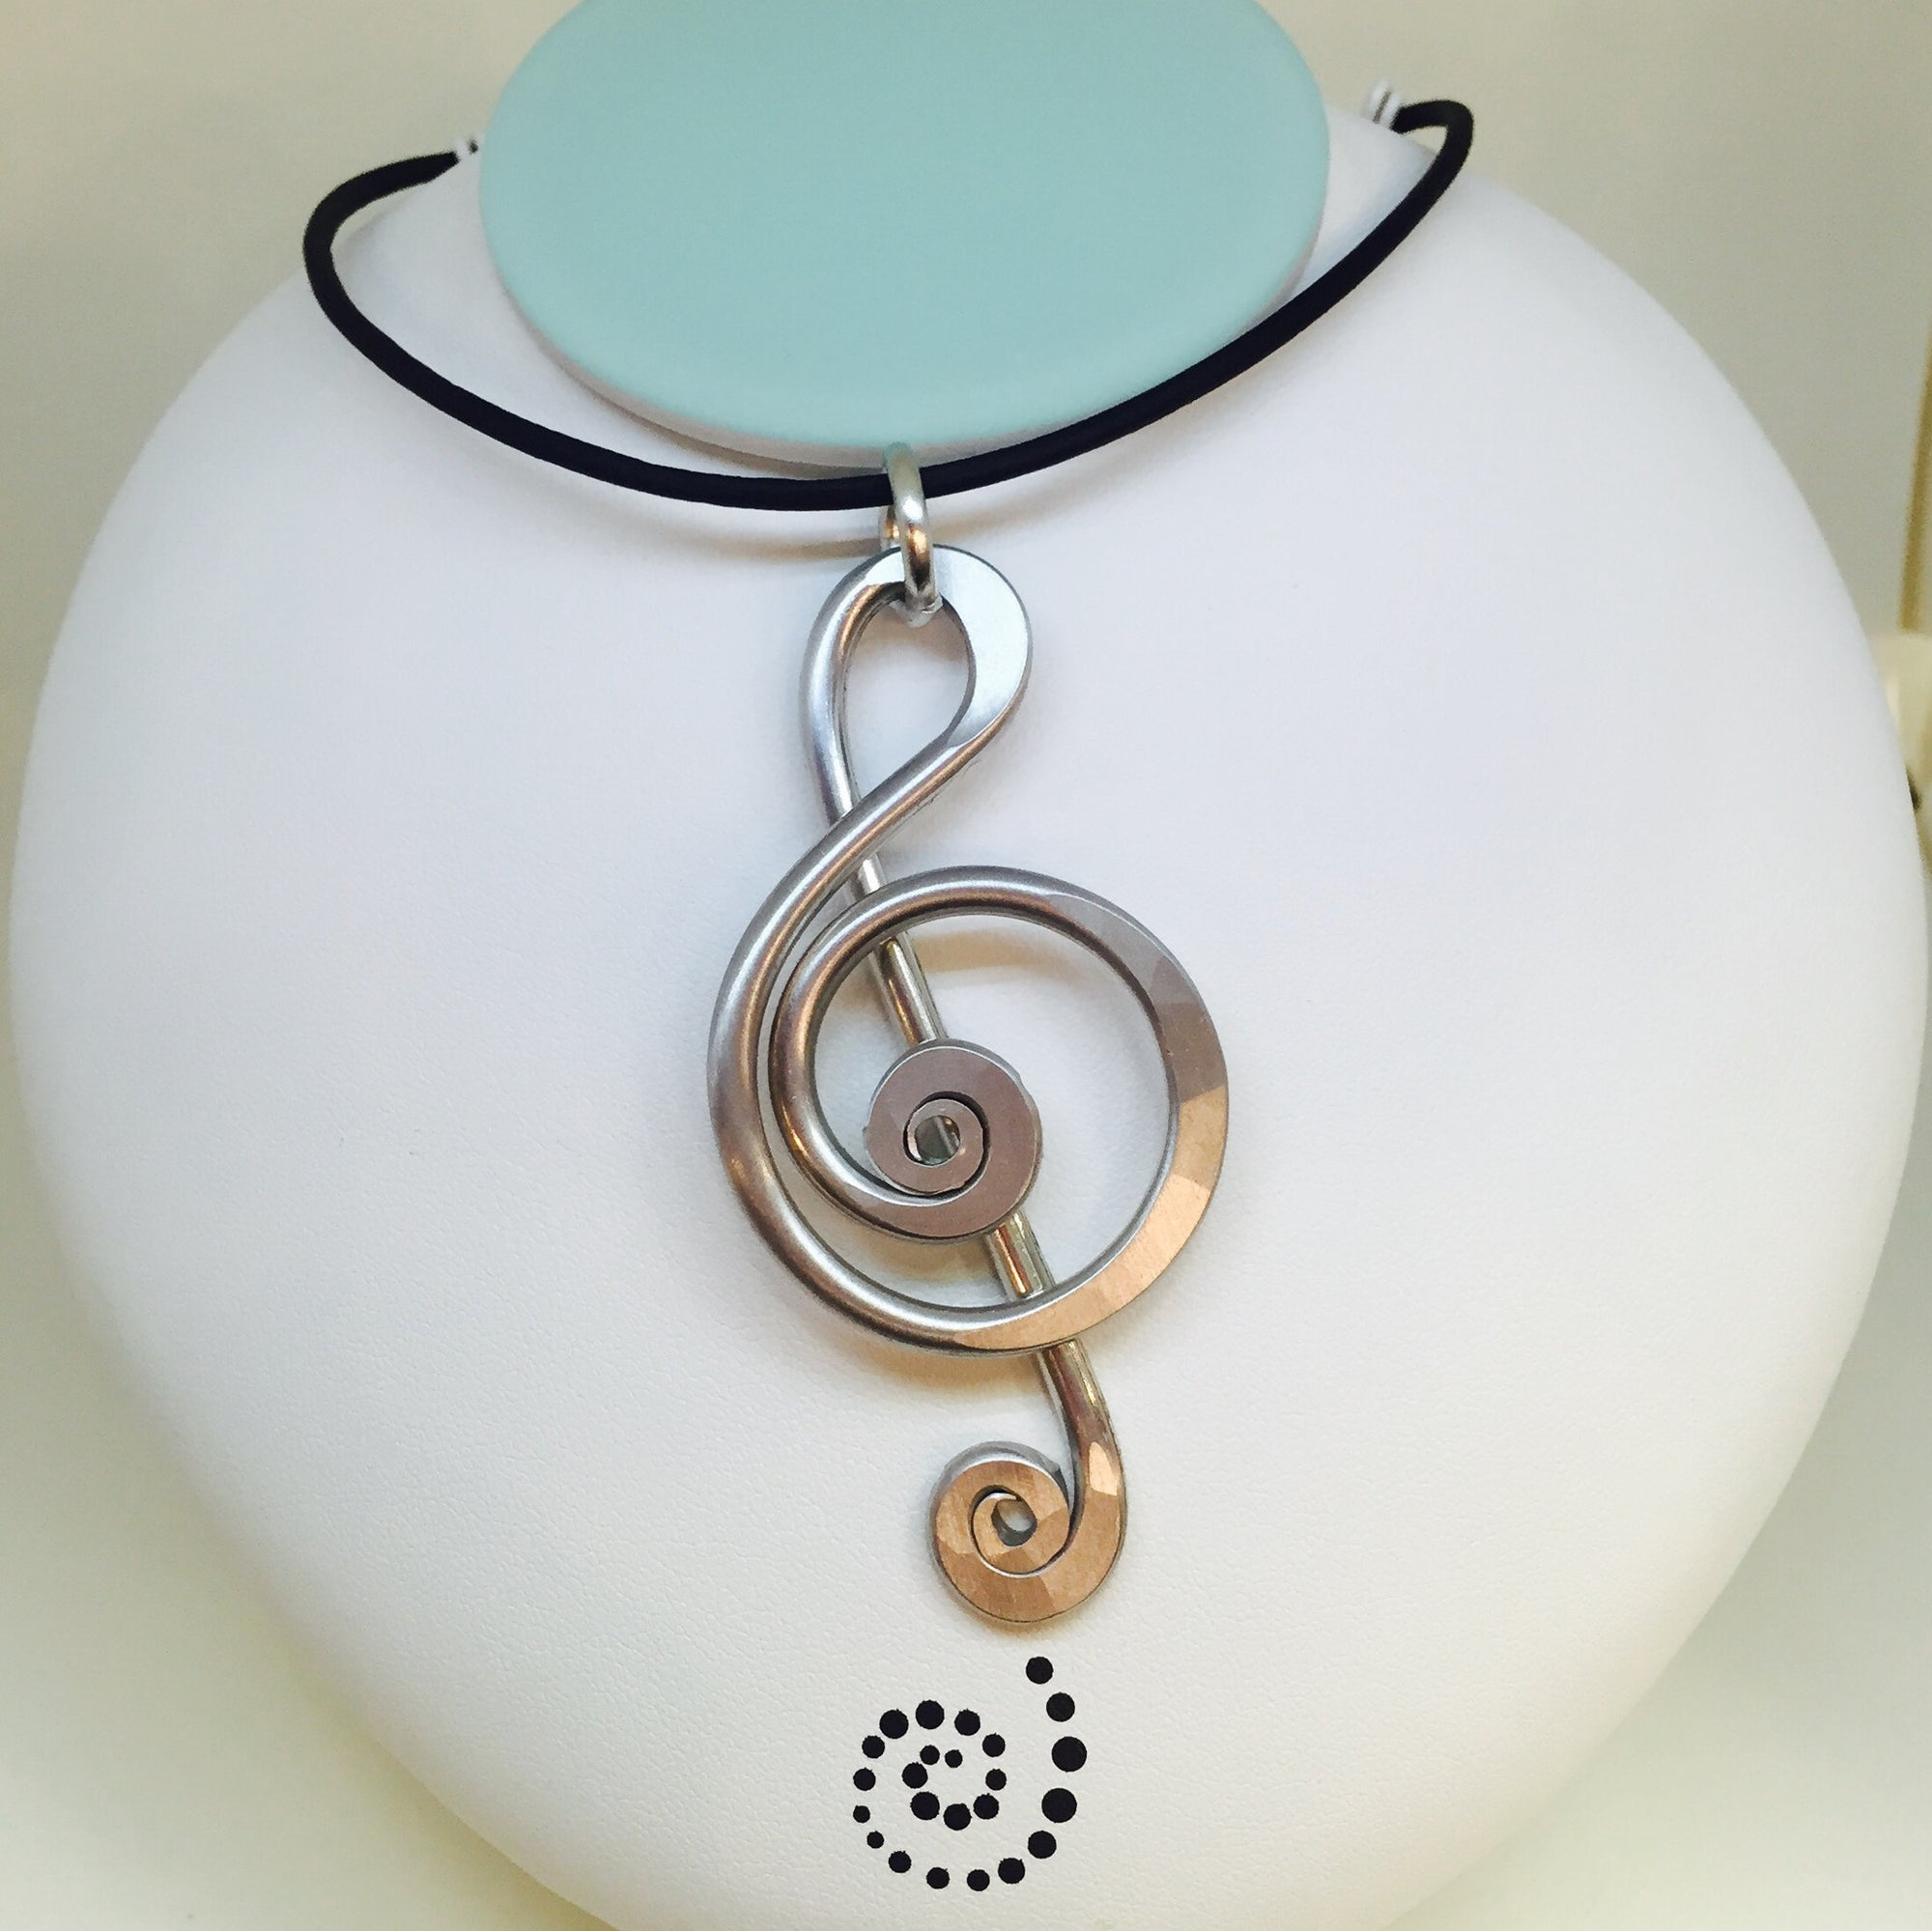 Music Note Necklace With Black Leather